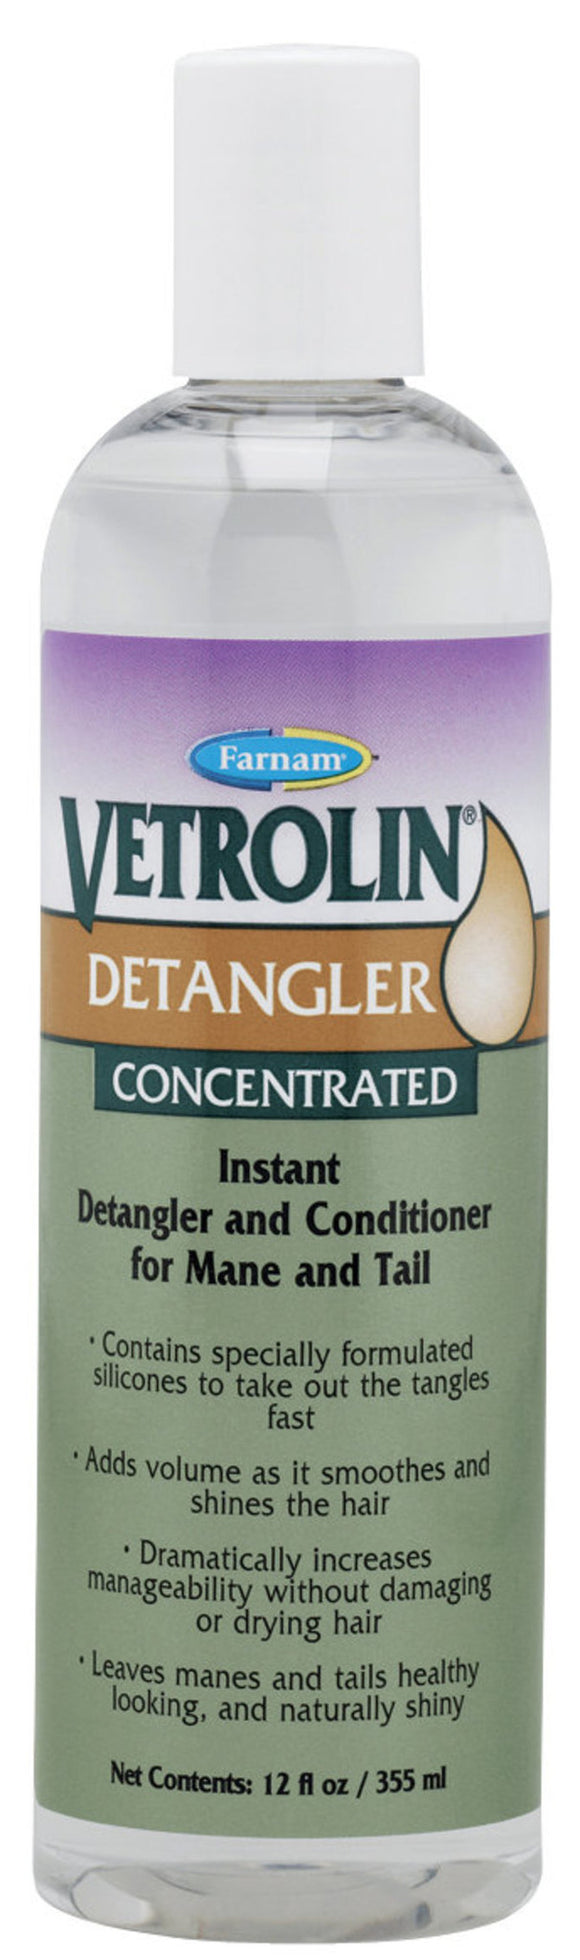 Vetrolin Concentrated Detangler - Tack In The Box